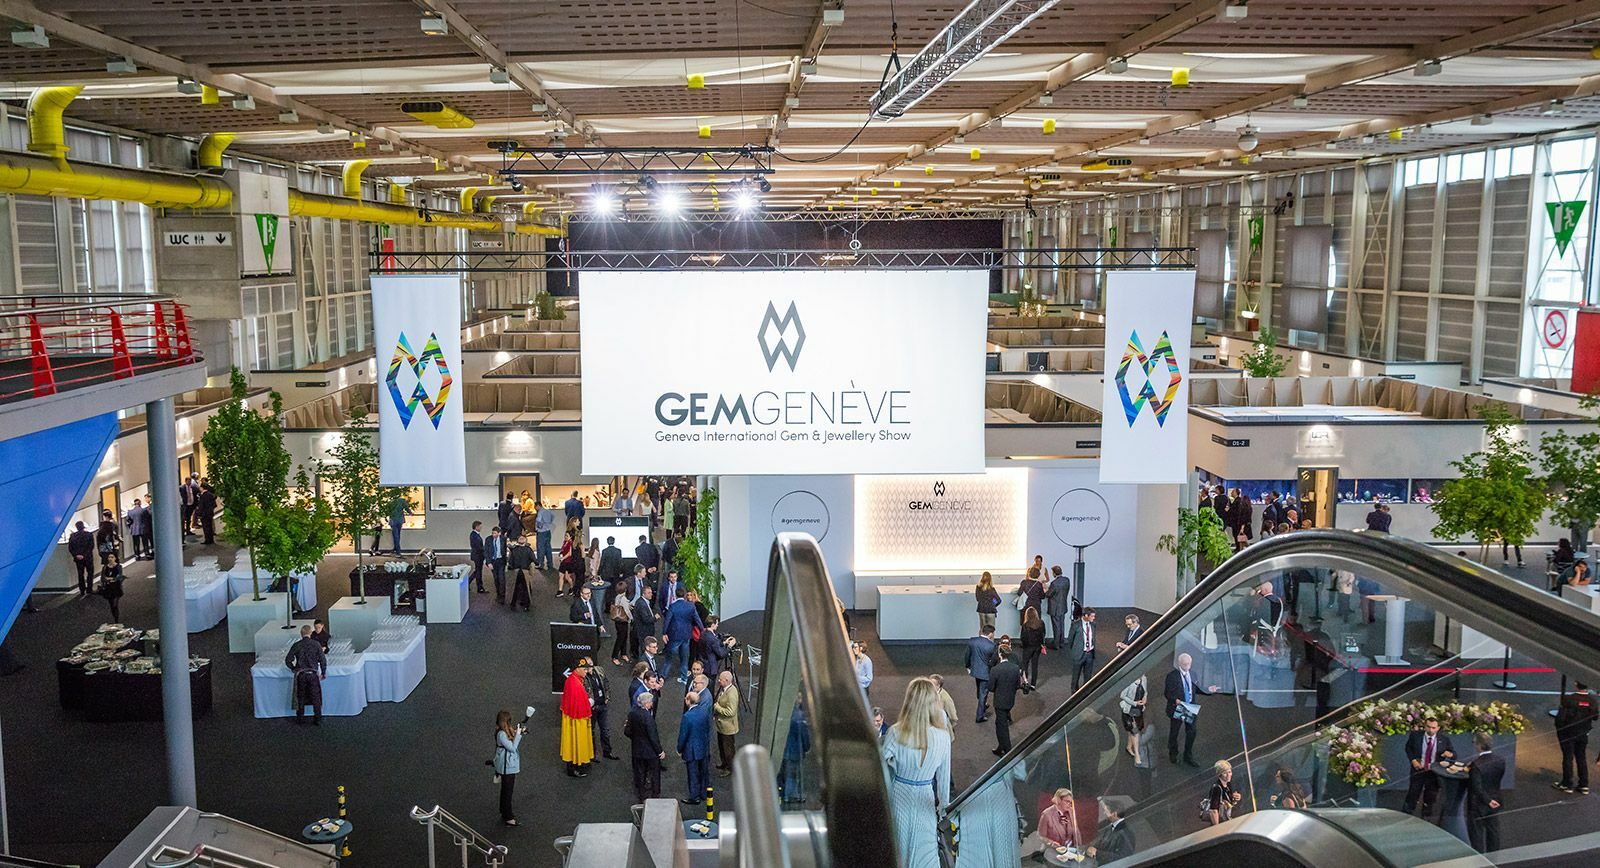 GemGenève: Success for the inaugural exhibition